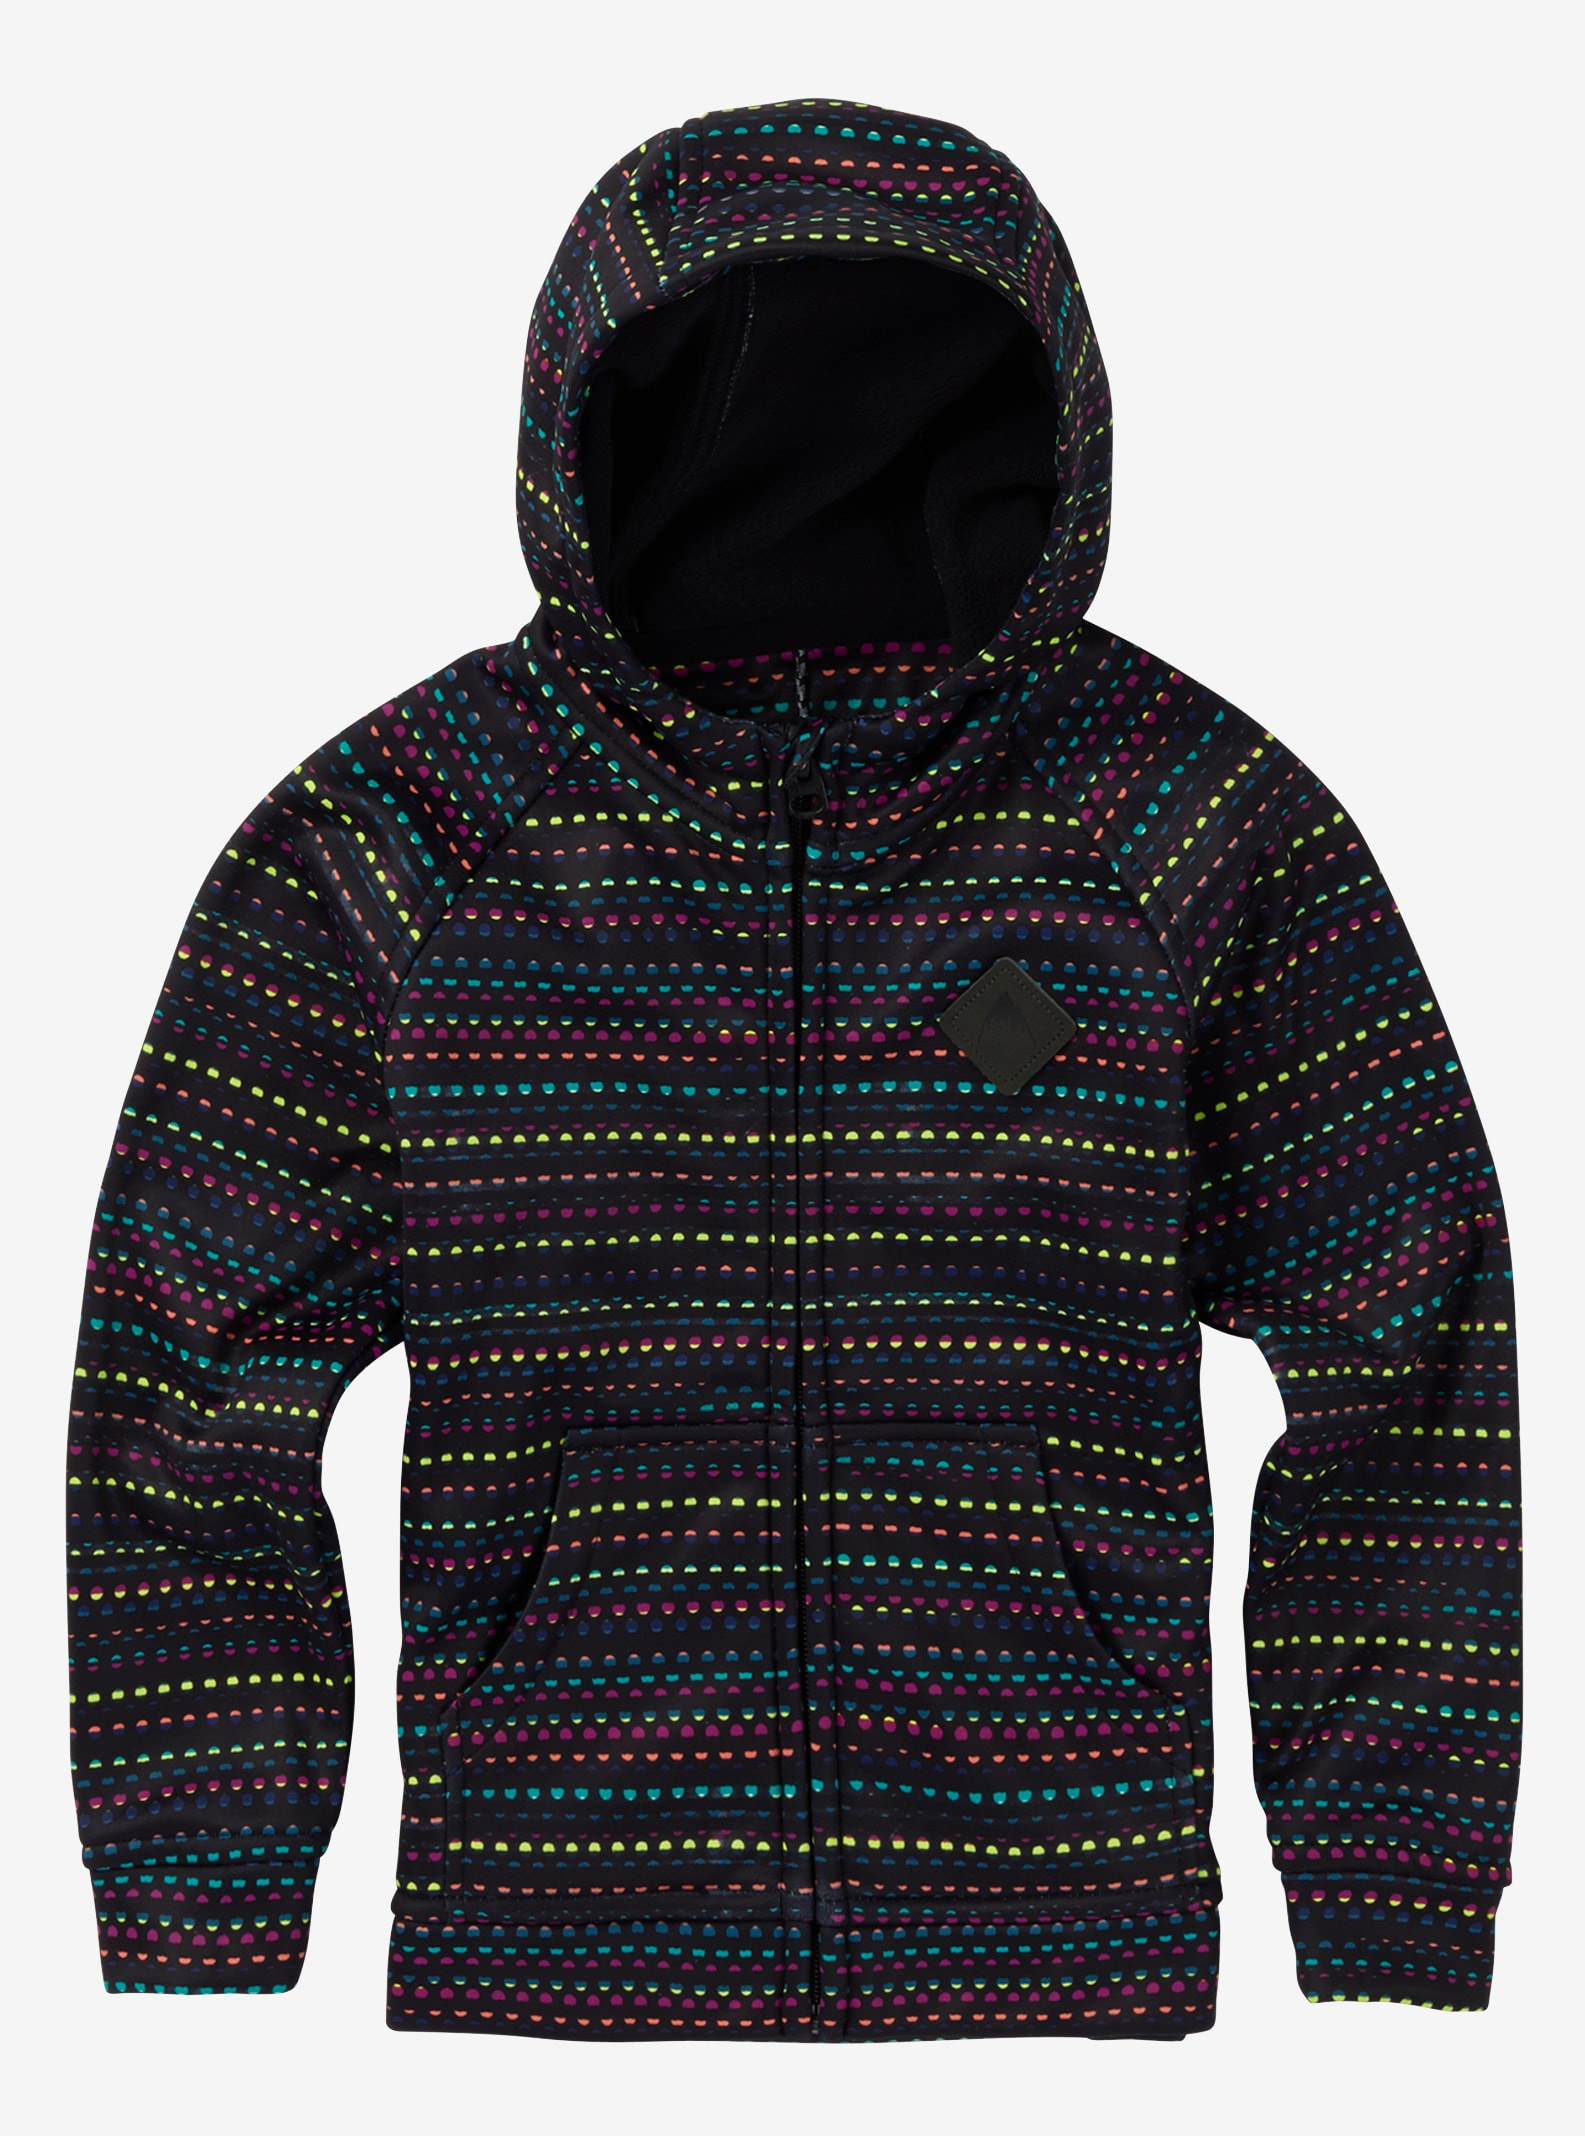 Kids' Burton Mini Bonded Full-Zip Hoodie shown in Candy Dots